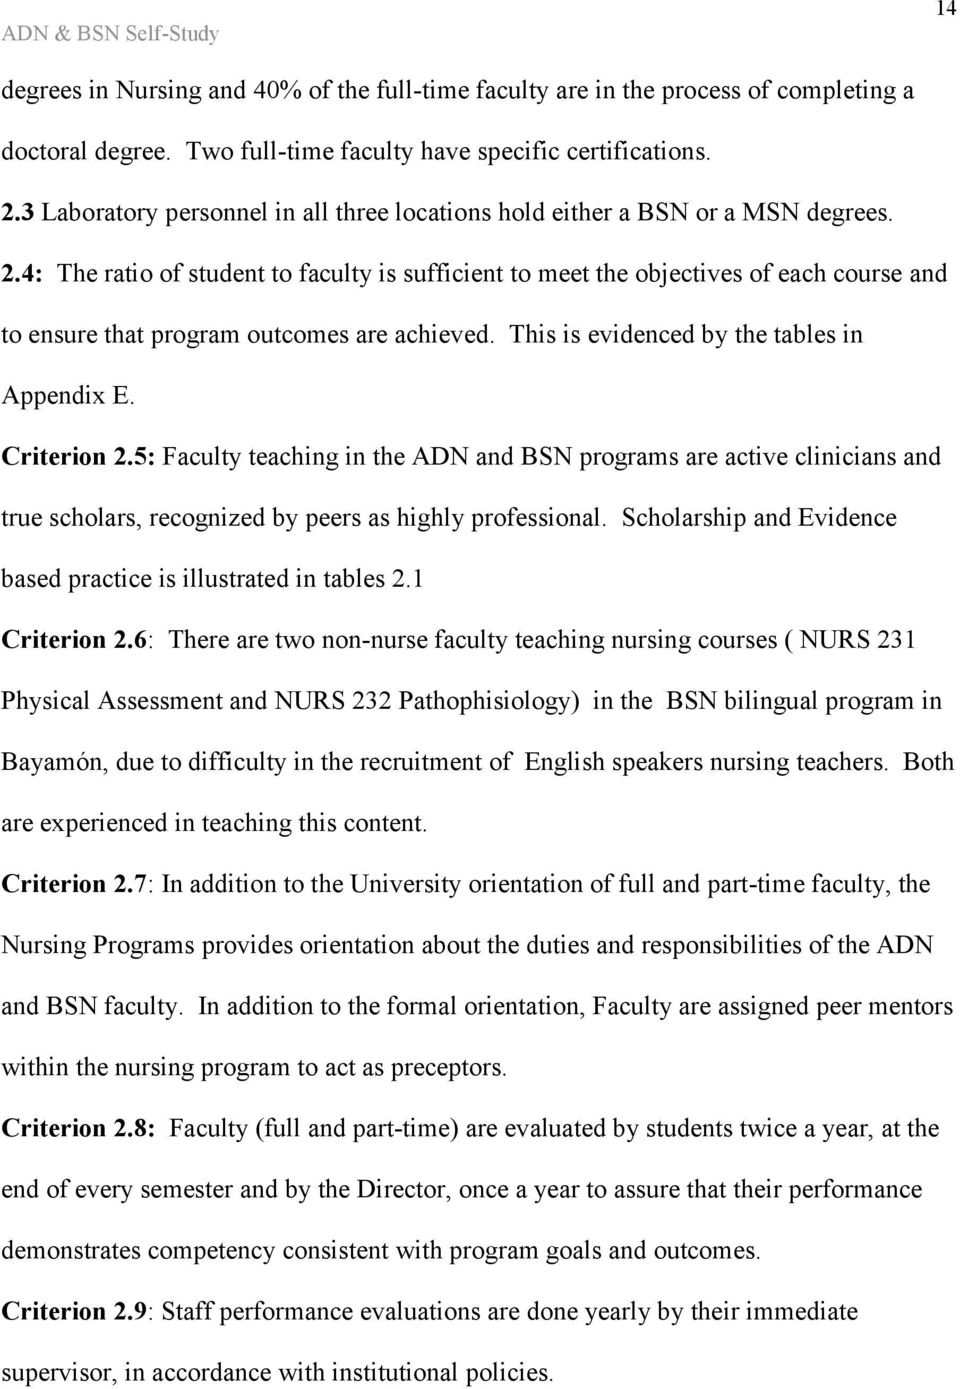 4: The ratio of student to faculty is sufficient to meet the objectives of each course and to ensure that program outcomes are achieved. This is evidenced by the tables in Appendix E. Criterion 2.